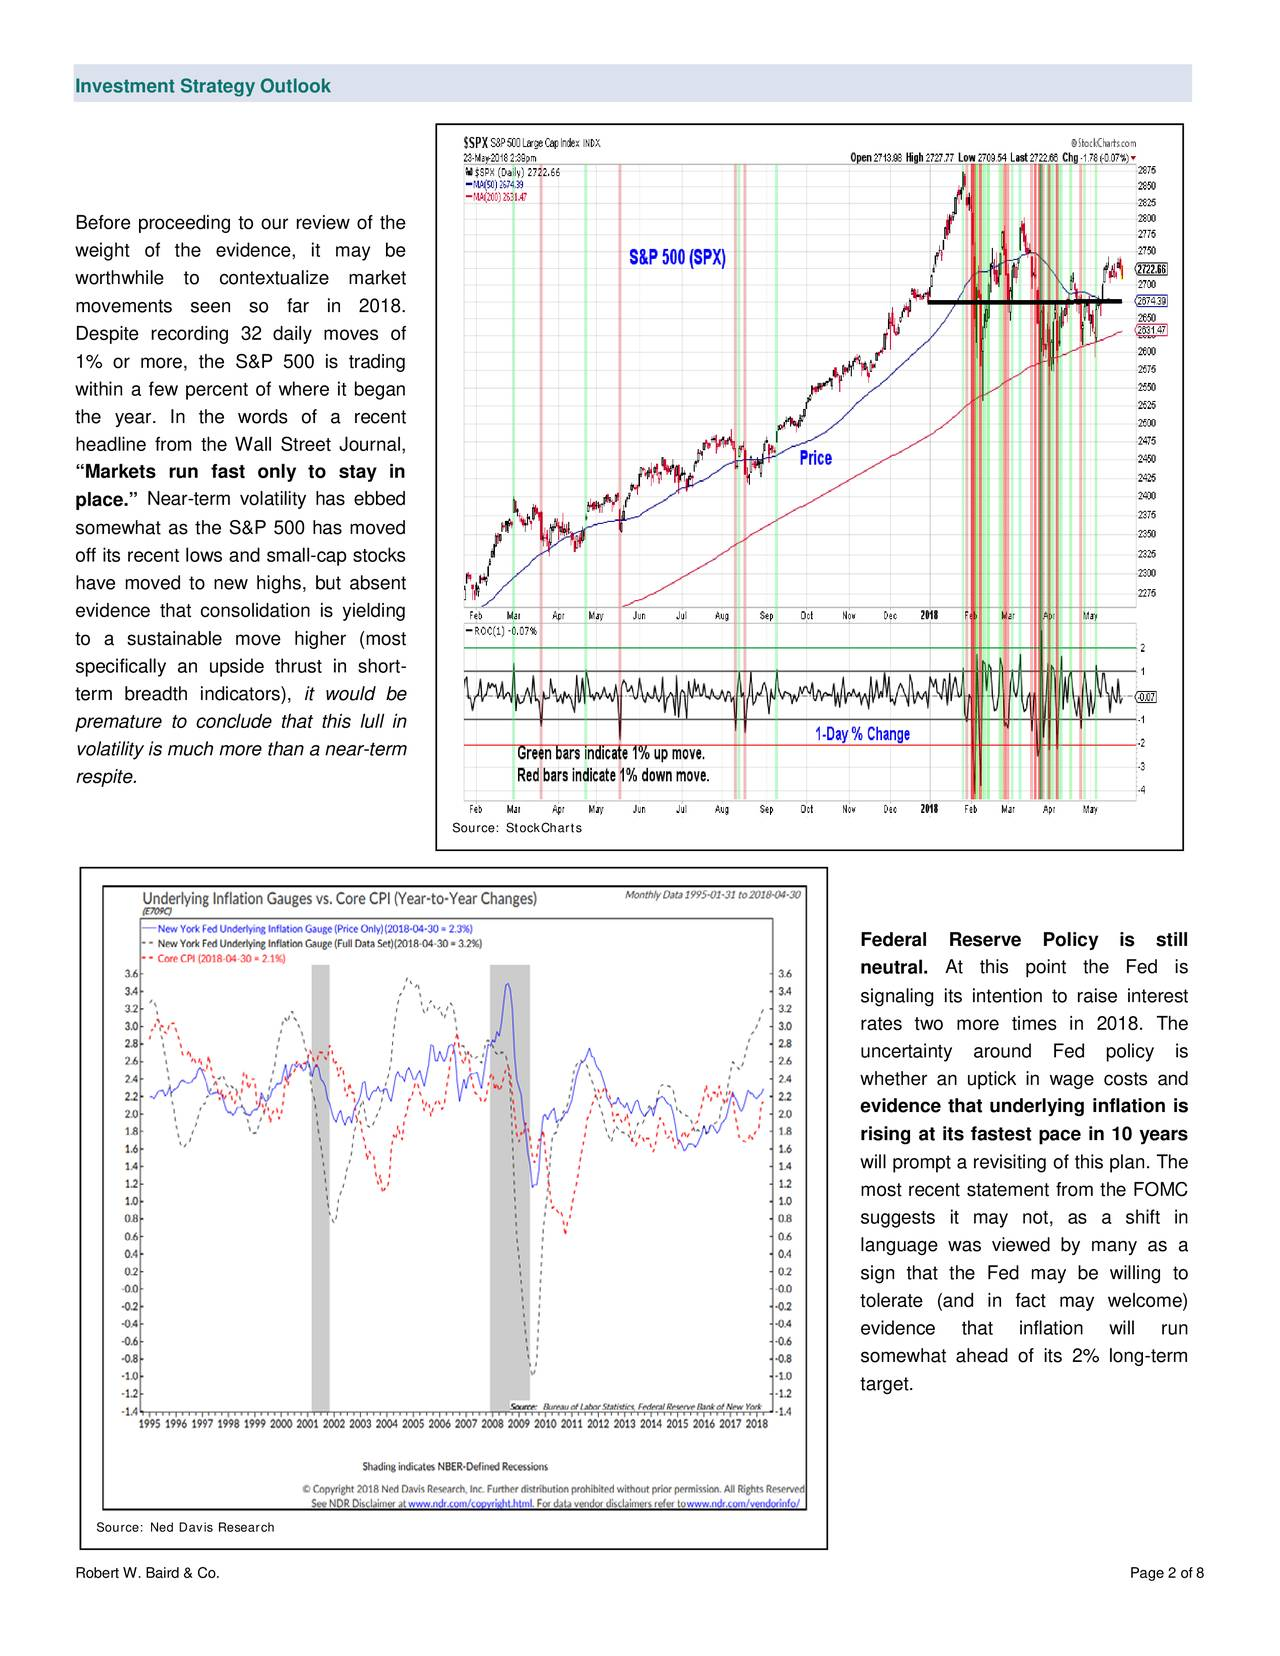 """Before proceeding to our review of the weight of the evidence, it may be worthwhile to contextualize market movements seen so far in 2018. Despite recording 32 daily moves of 1% or more, the S&P 500 is trading within a few percent of where it began the year. In the words of a recent headline from the Wall St reet Journal, """"Markets run fast only to stay in place."""" Near-term volatility has ebbed somewhat as the S&P 500 has moved off its recent lows and small -cap stocks have moved to new highs, but absent evidence that consolidation is yielding to a sustainable m ove higher (most specifically an upside thrust in short - term breadth indicators), it would be premature to conclude that this lull in volatility is much more than a near-term respite. Source: StockCharts Federal Reserve Policy is still neutral. At this point the Fed is signaling its intention to raise interest rates two more times in 2018. The uncertainty around Fed policy is whether an uptick in wage costs and evidence that underlying inflation is rising at its fastest pace in 10 years will prompt a revisiting of this plan. The most recent statement from the FOMC suggests it may not, as a shift in language was viewed by many as a sign that the Fed may be willing to tolerate (and in fact may welcome) evidence that inflation will run somewhat ahead of its 2% long-term target. Source: Ned Davis Research Robert W. Baird & Co. Page 2 of 8"""